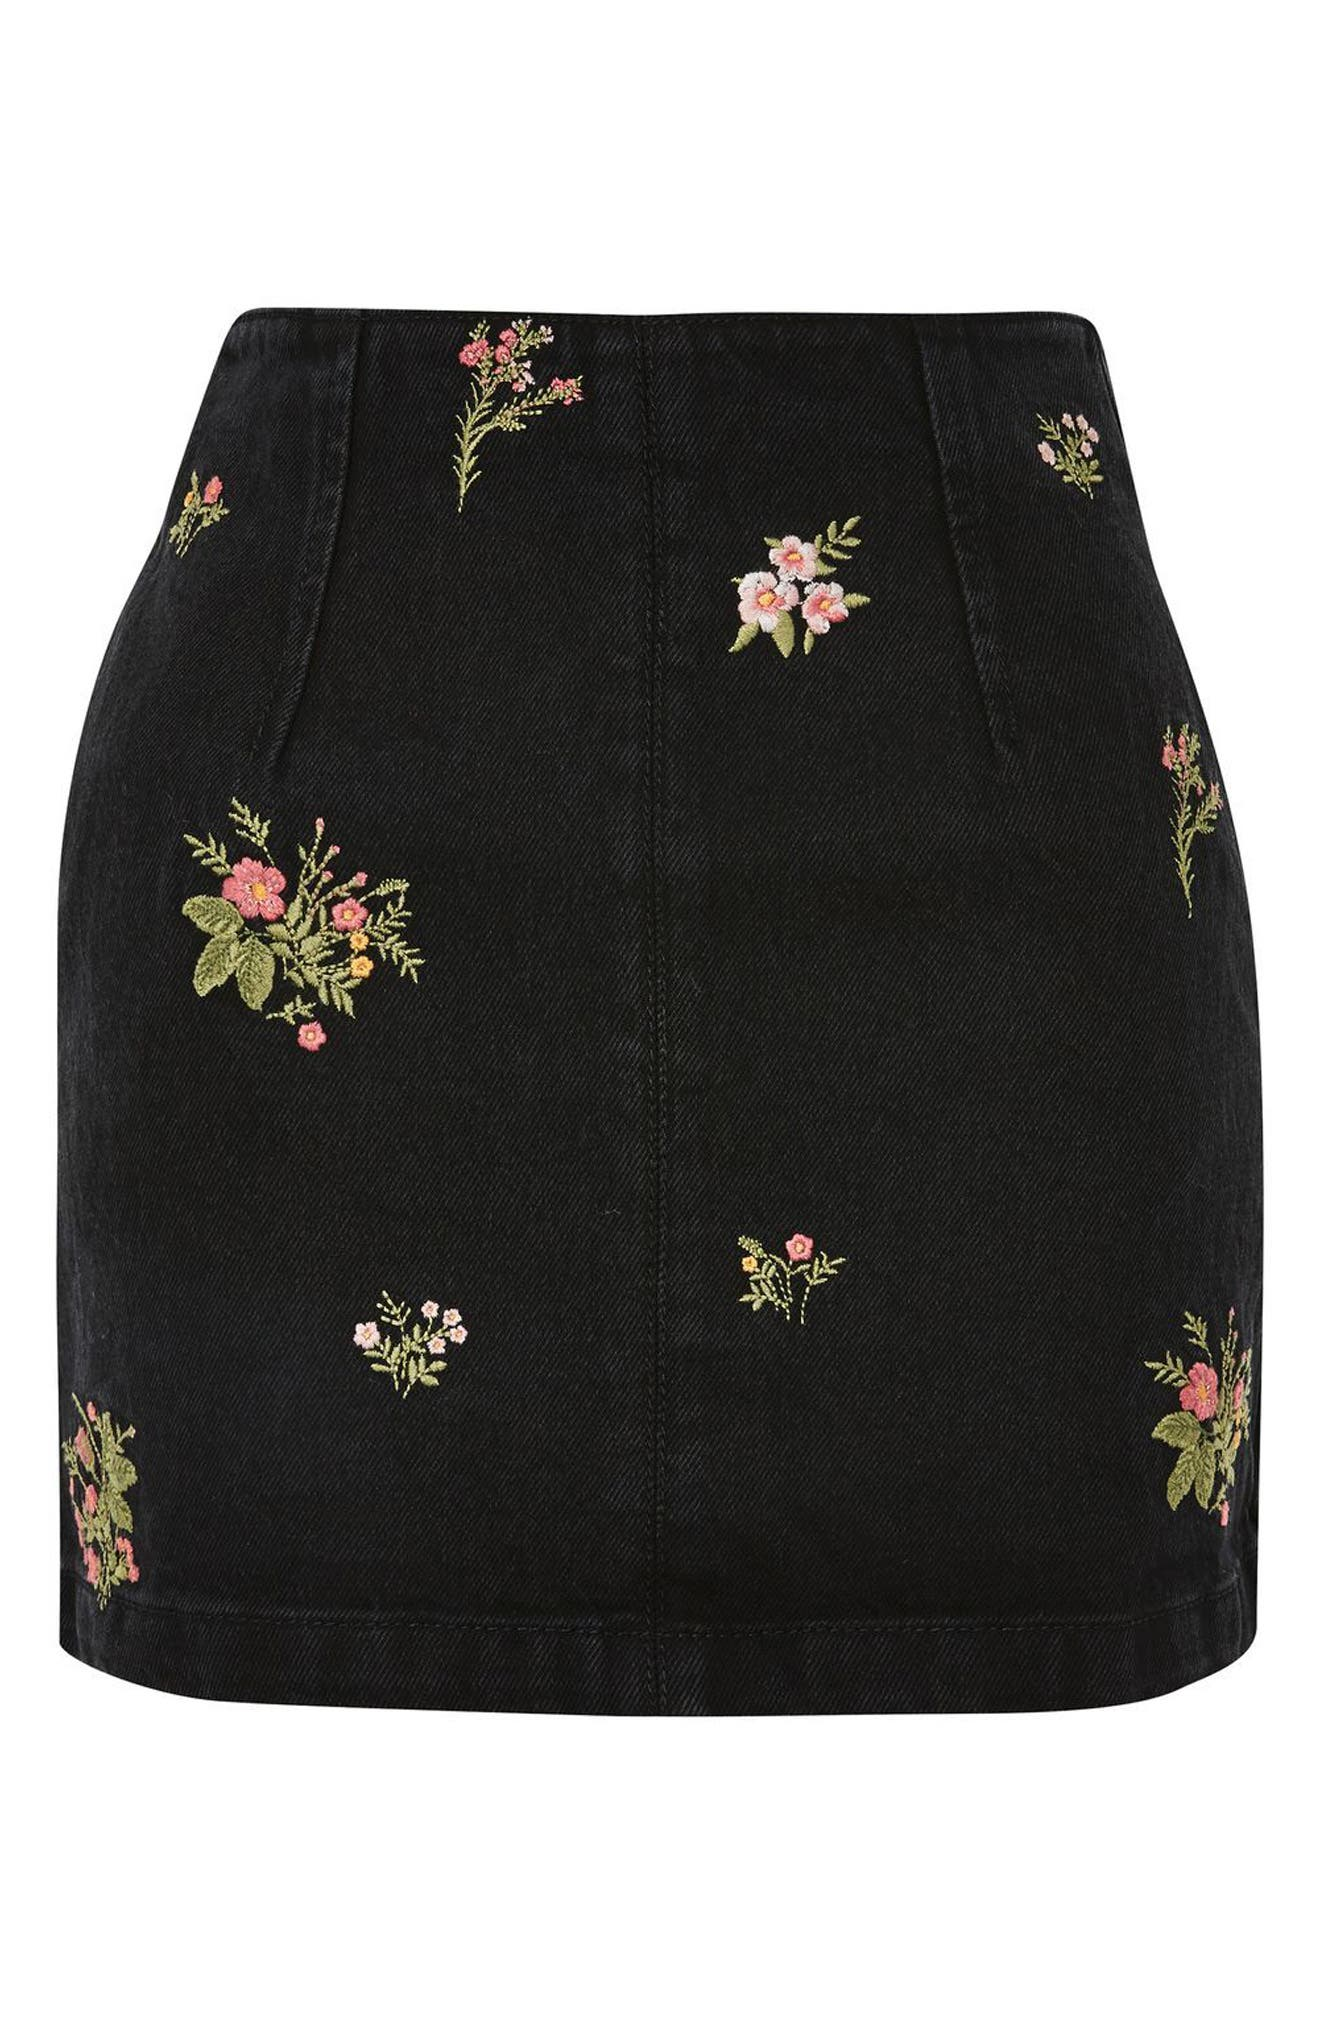 Romantic Floral Denim Miniskirt,                             Alternate thumbnail 3, color,                             001